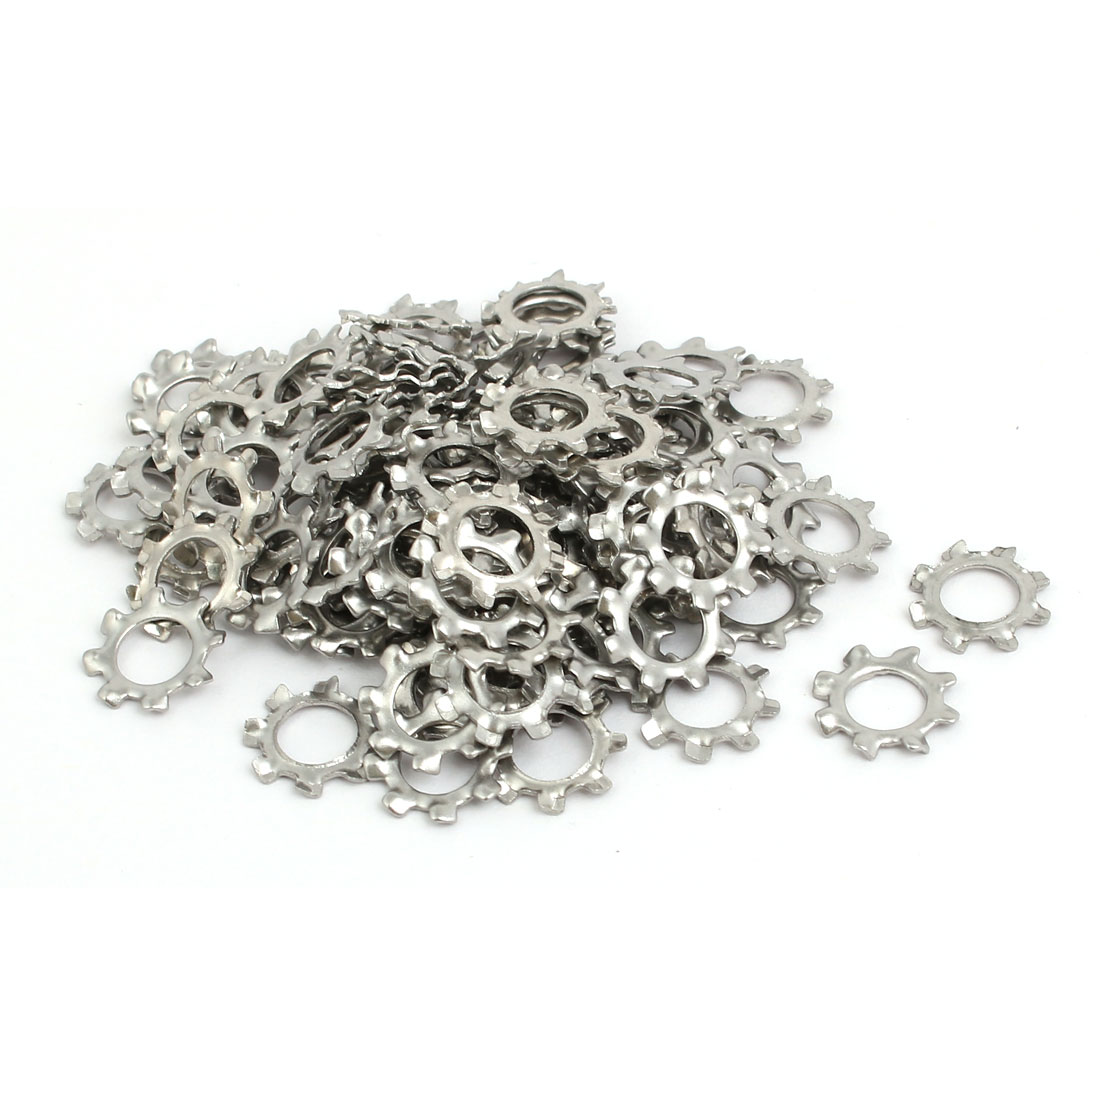 6mm Inner Dia Stainless Steel External Tooth Lock Washer Silver Tone 100pcs